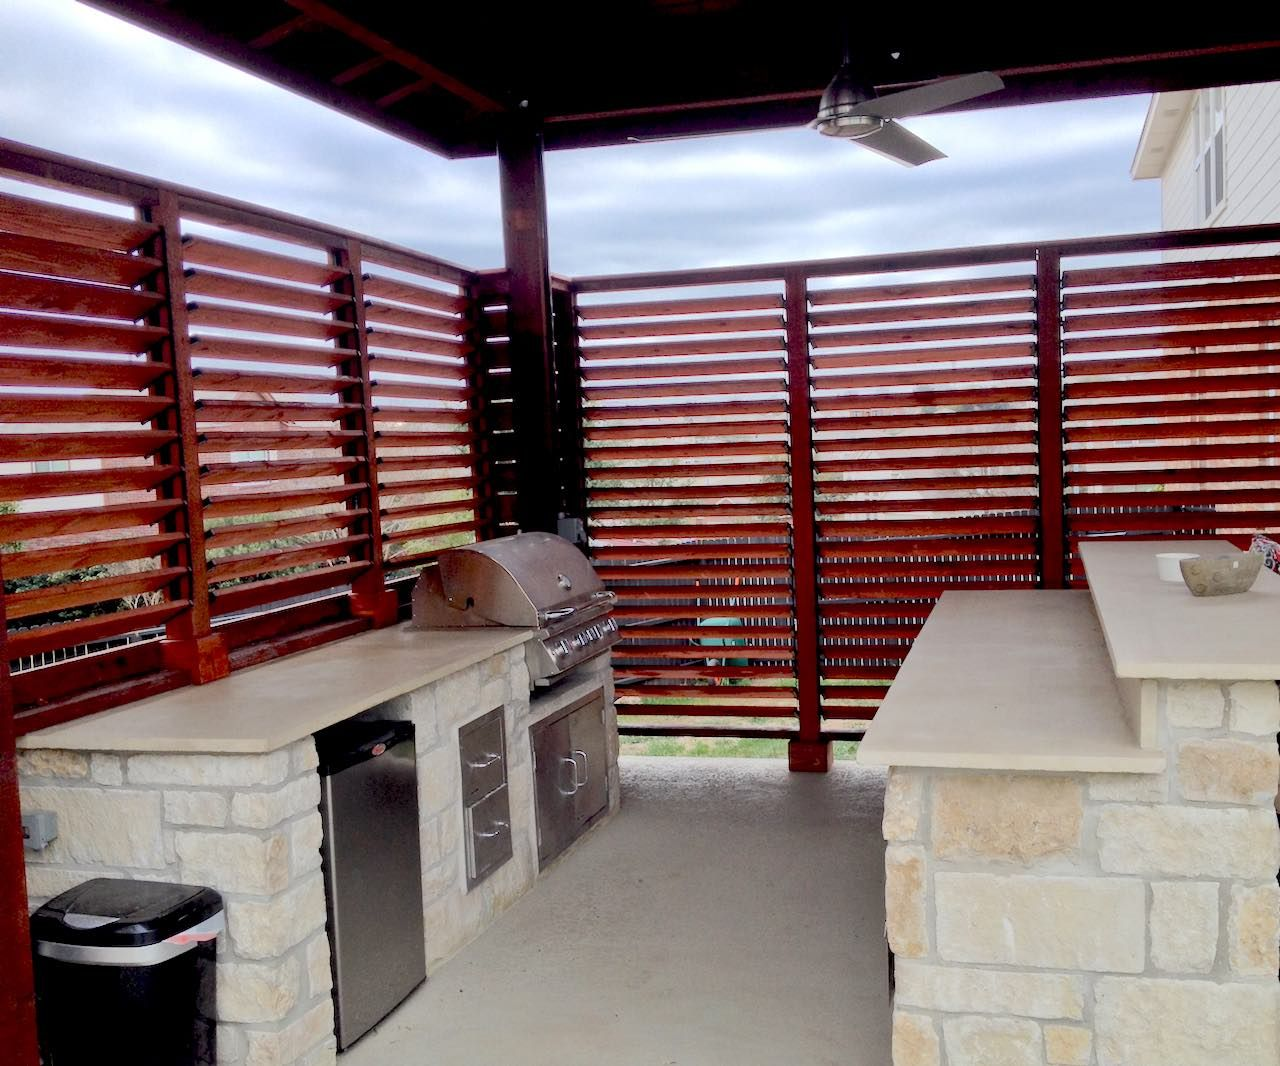 Fences were made for the FLEX•fence hardware kit. Check out the front yard privacy screen and the privacy retaining wall. Fences look great with FLEX•fence.